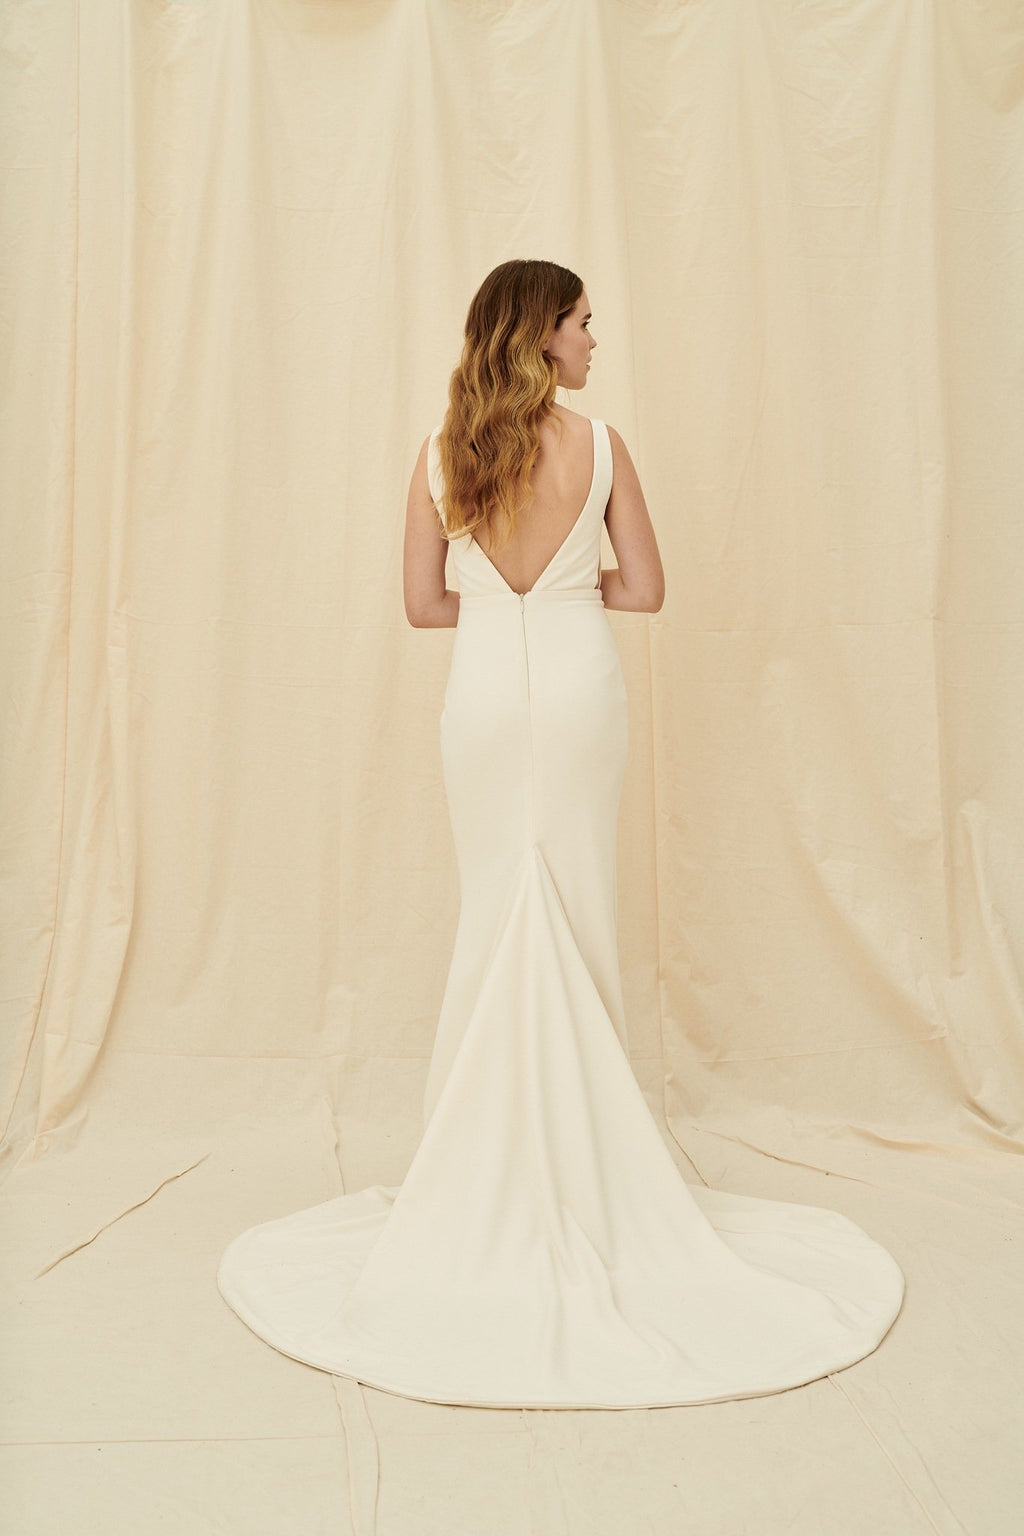 Wedding dress shops in Vancouver and Calgary